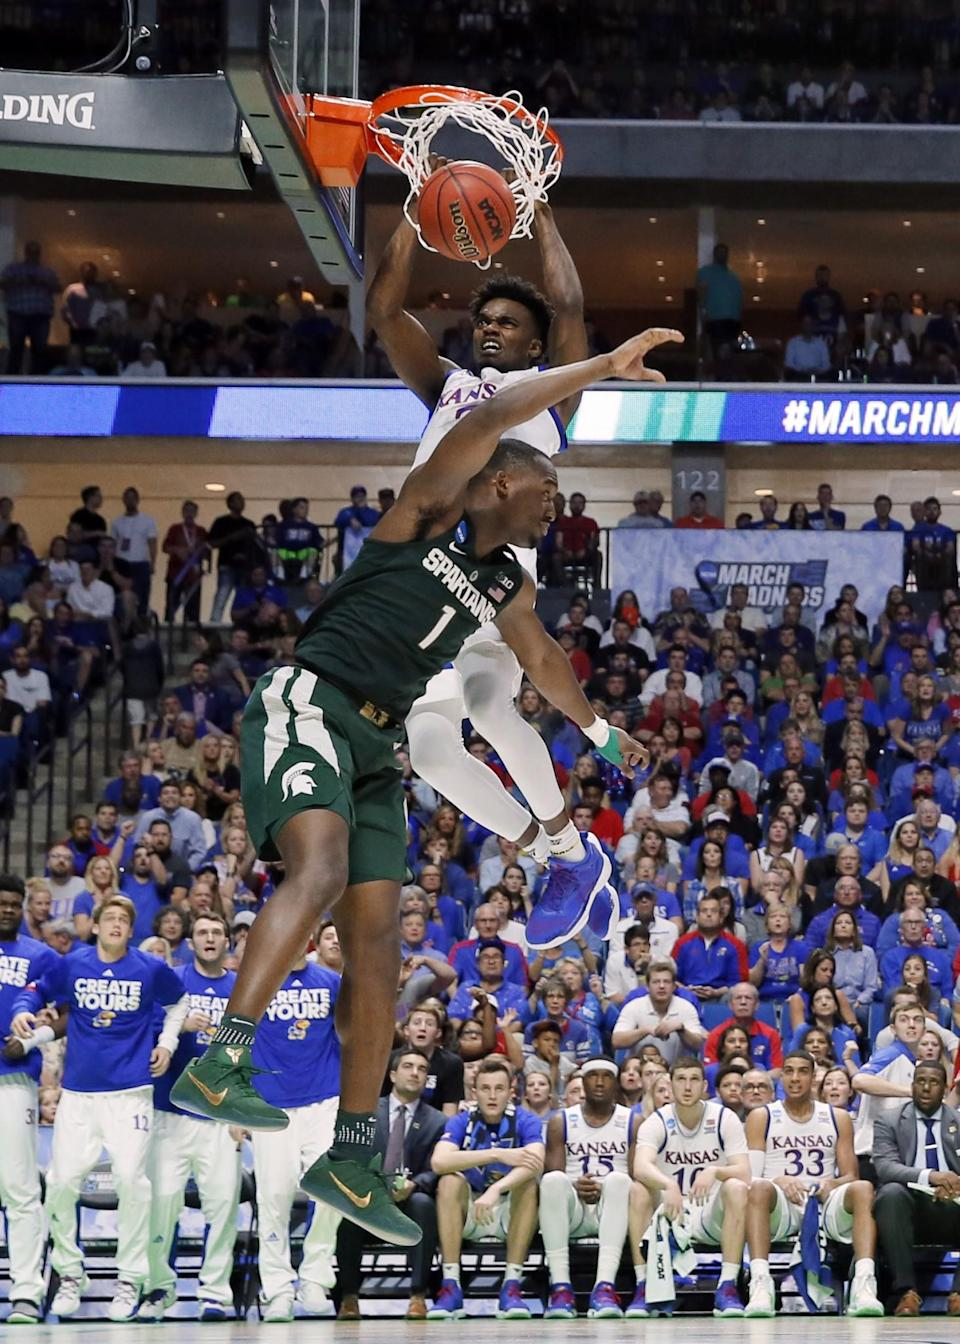 <p>Kansas guard Lagerald Vick (2) dunks the ball over Michigan State' Joshua Langford (1) in the second half of a second-round game in the men's NCAA college basketball tournament in Tulsa, Okla., Sunday, March 19, 2017. (AP Photo/Tony Gutierrez) </p>